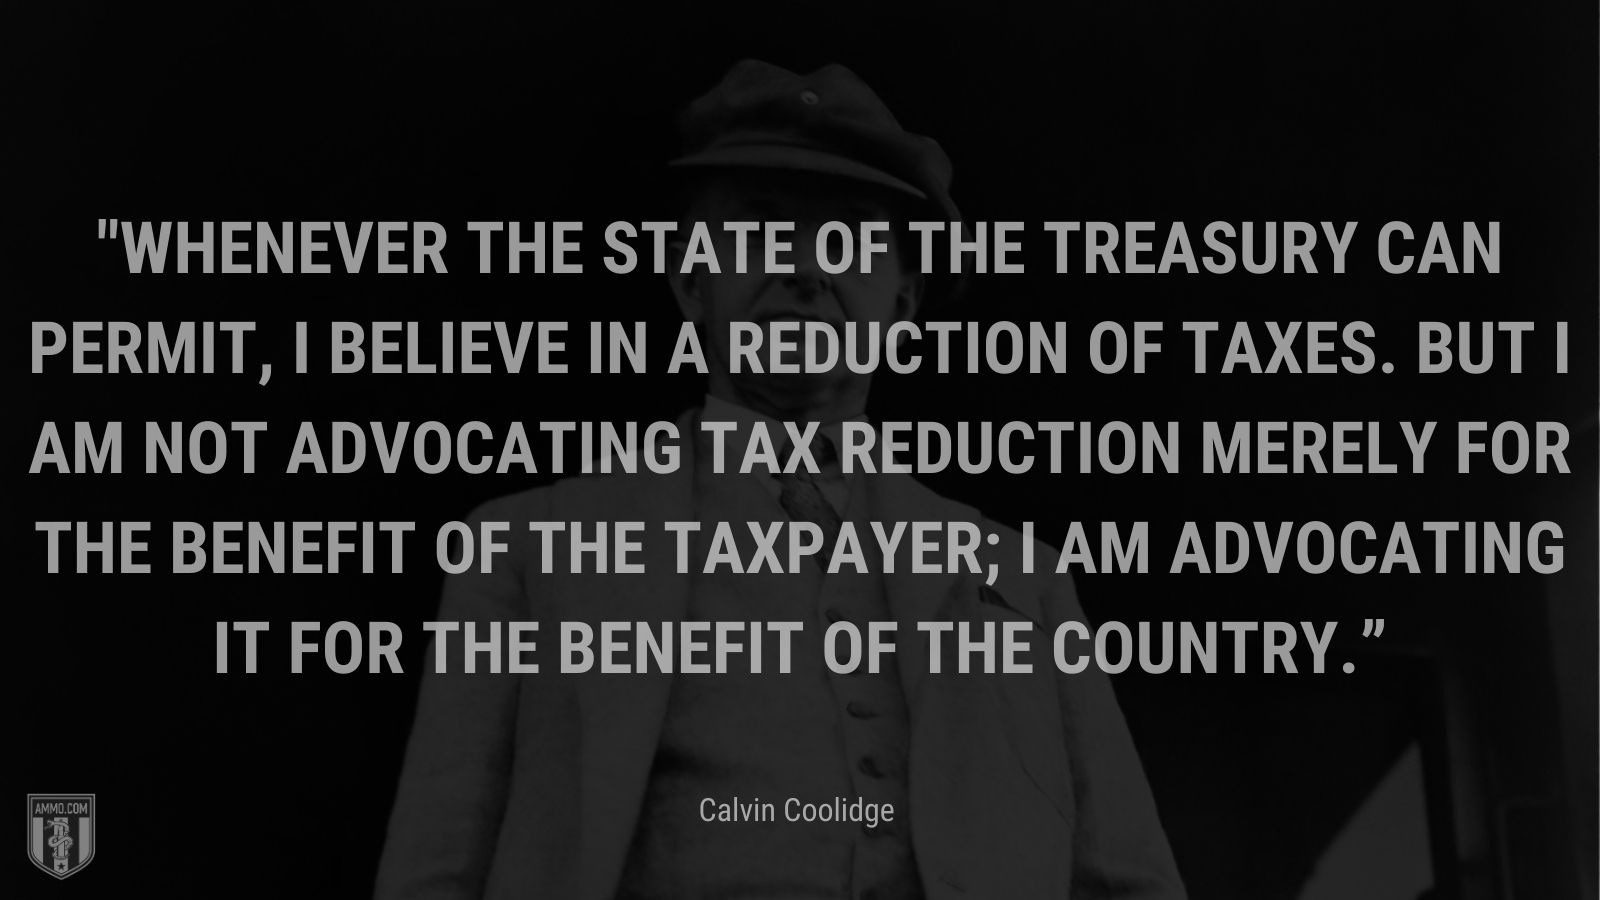 """""""Whenever the state of the Treasury can permit, I believe in a reduction of taxes. But I am not advocating tax reduction merely for the benefit of the taxpayer; I am advocating it for the benefit of the country."""" - Calvin Coolidge"""